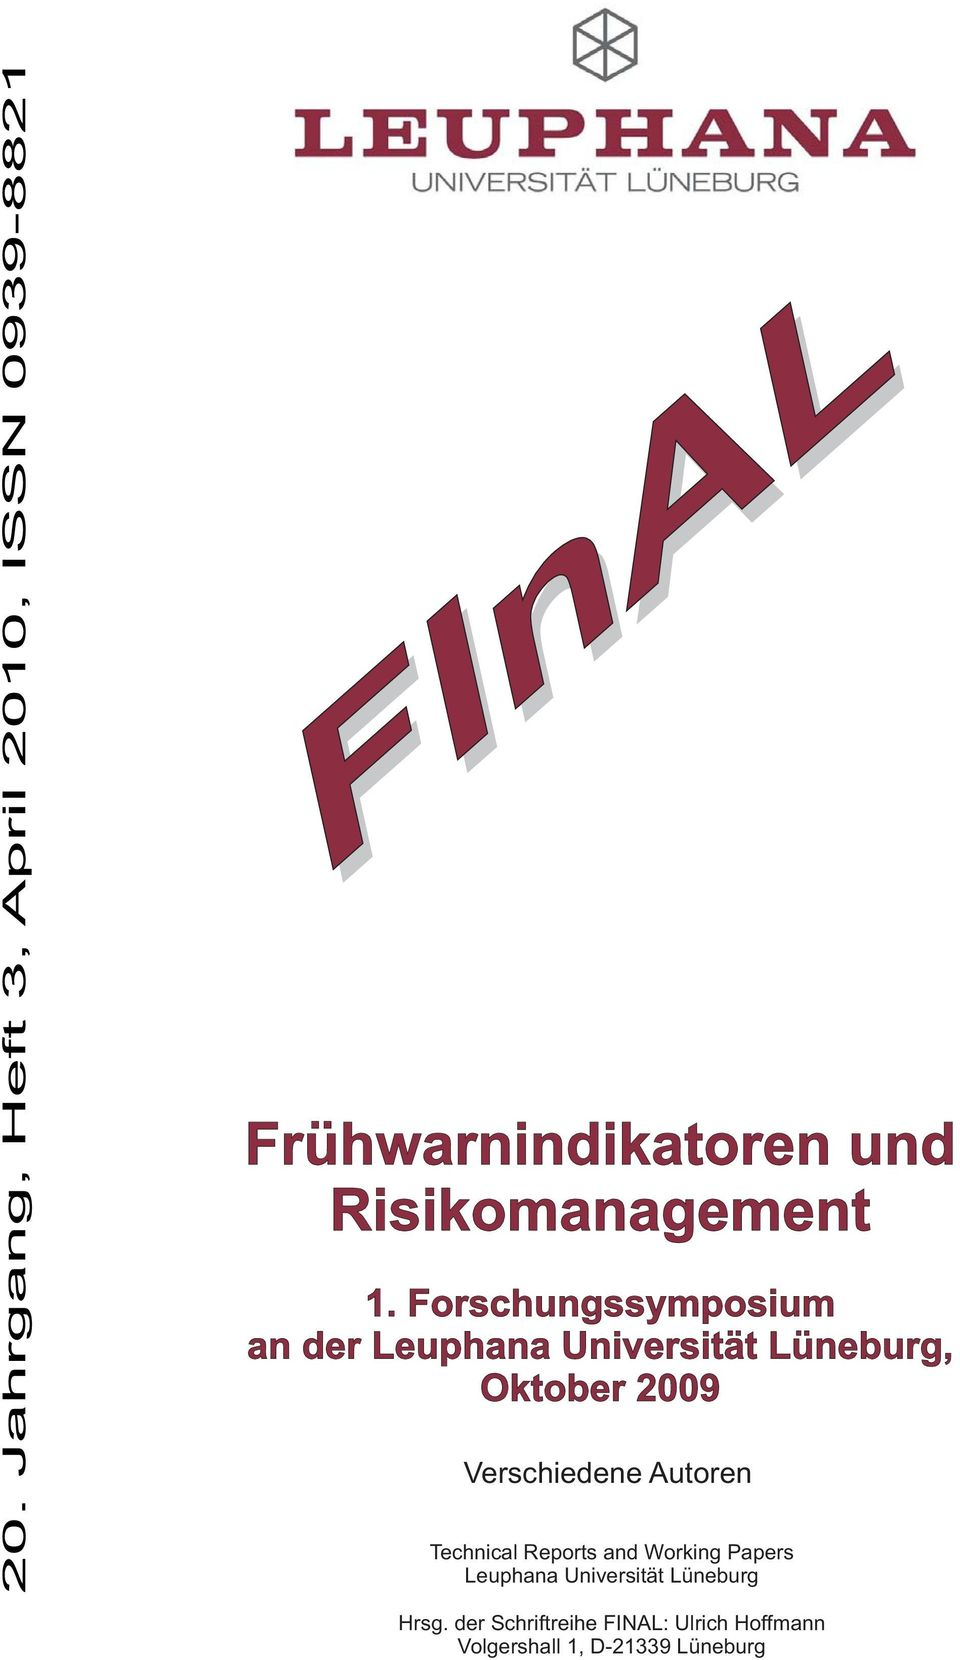 Risikomanagement 1.